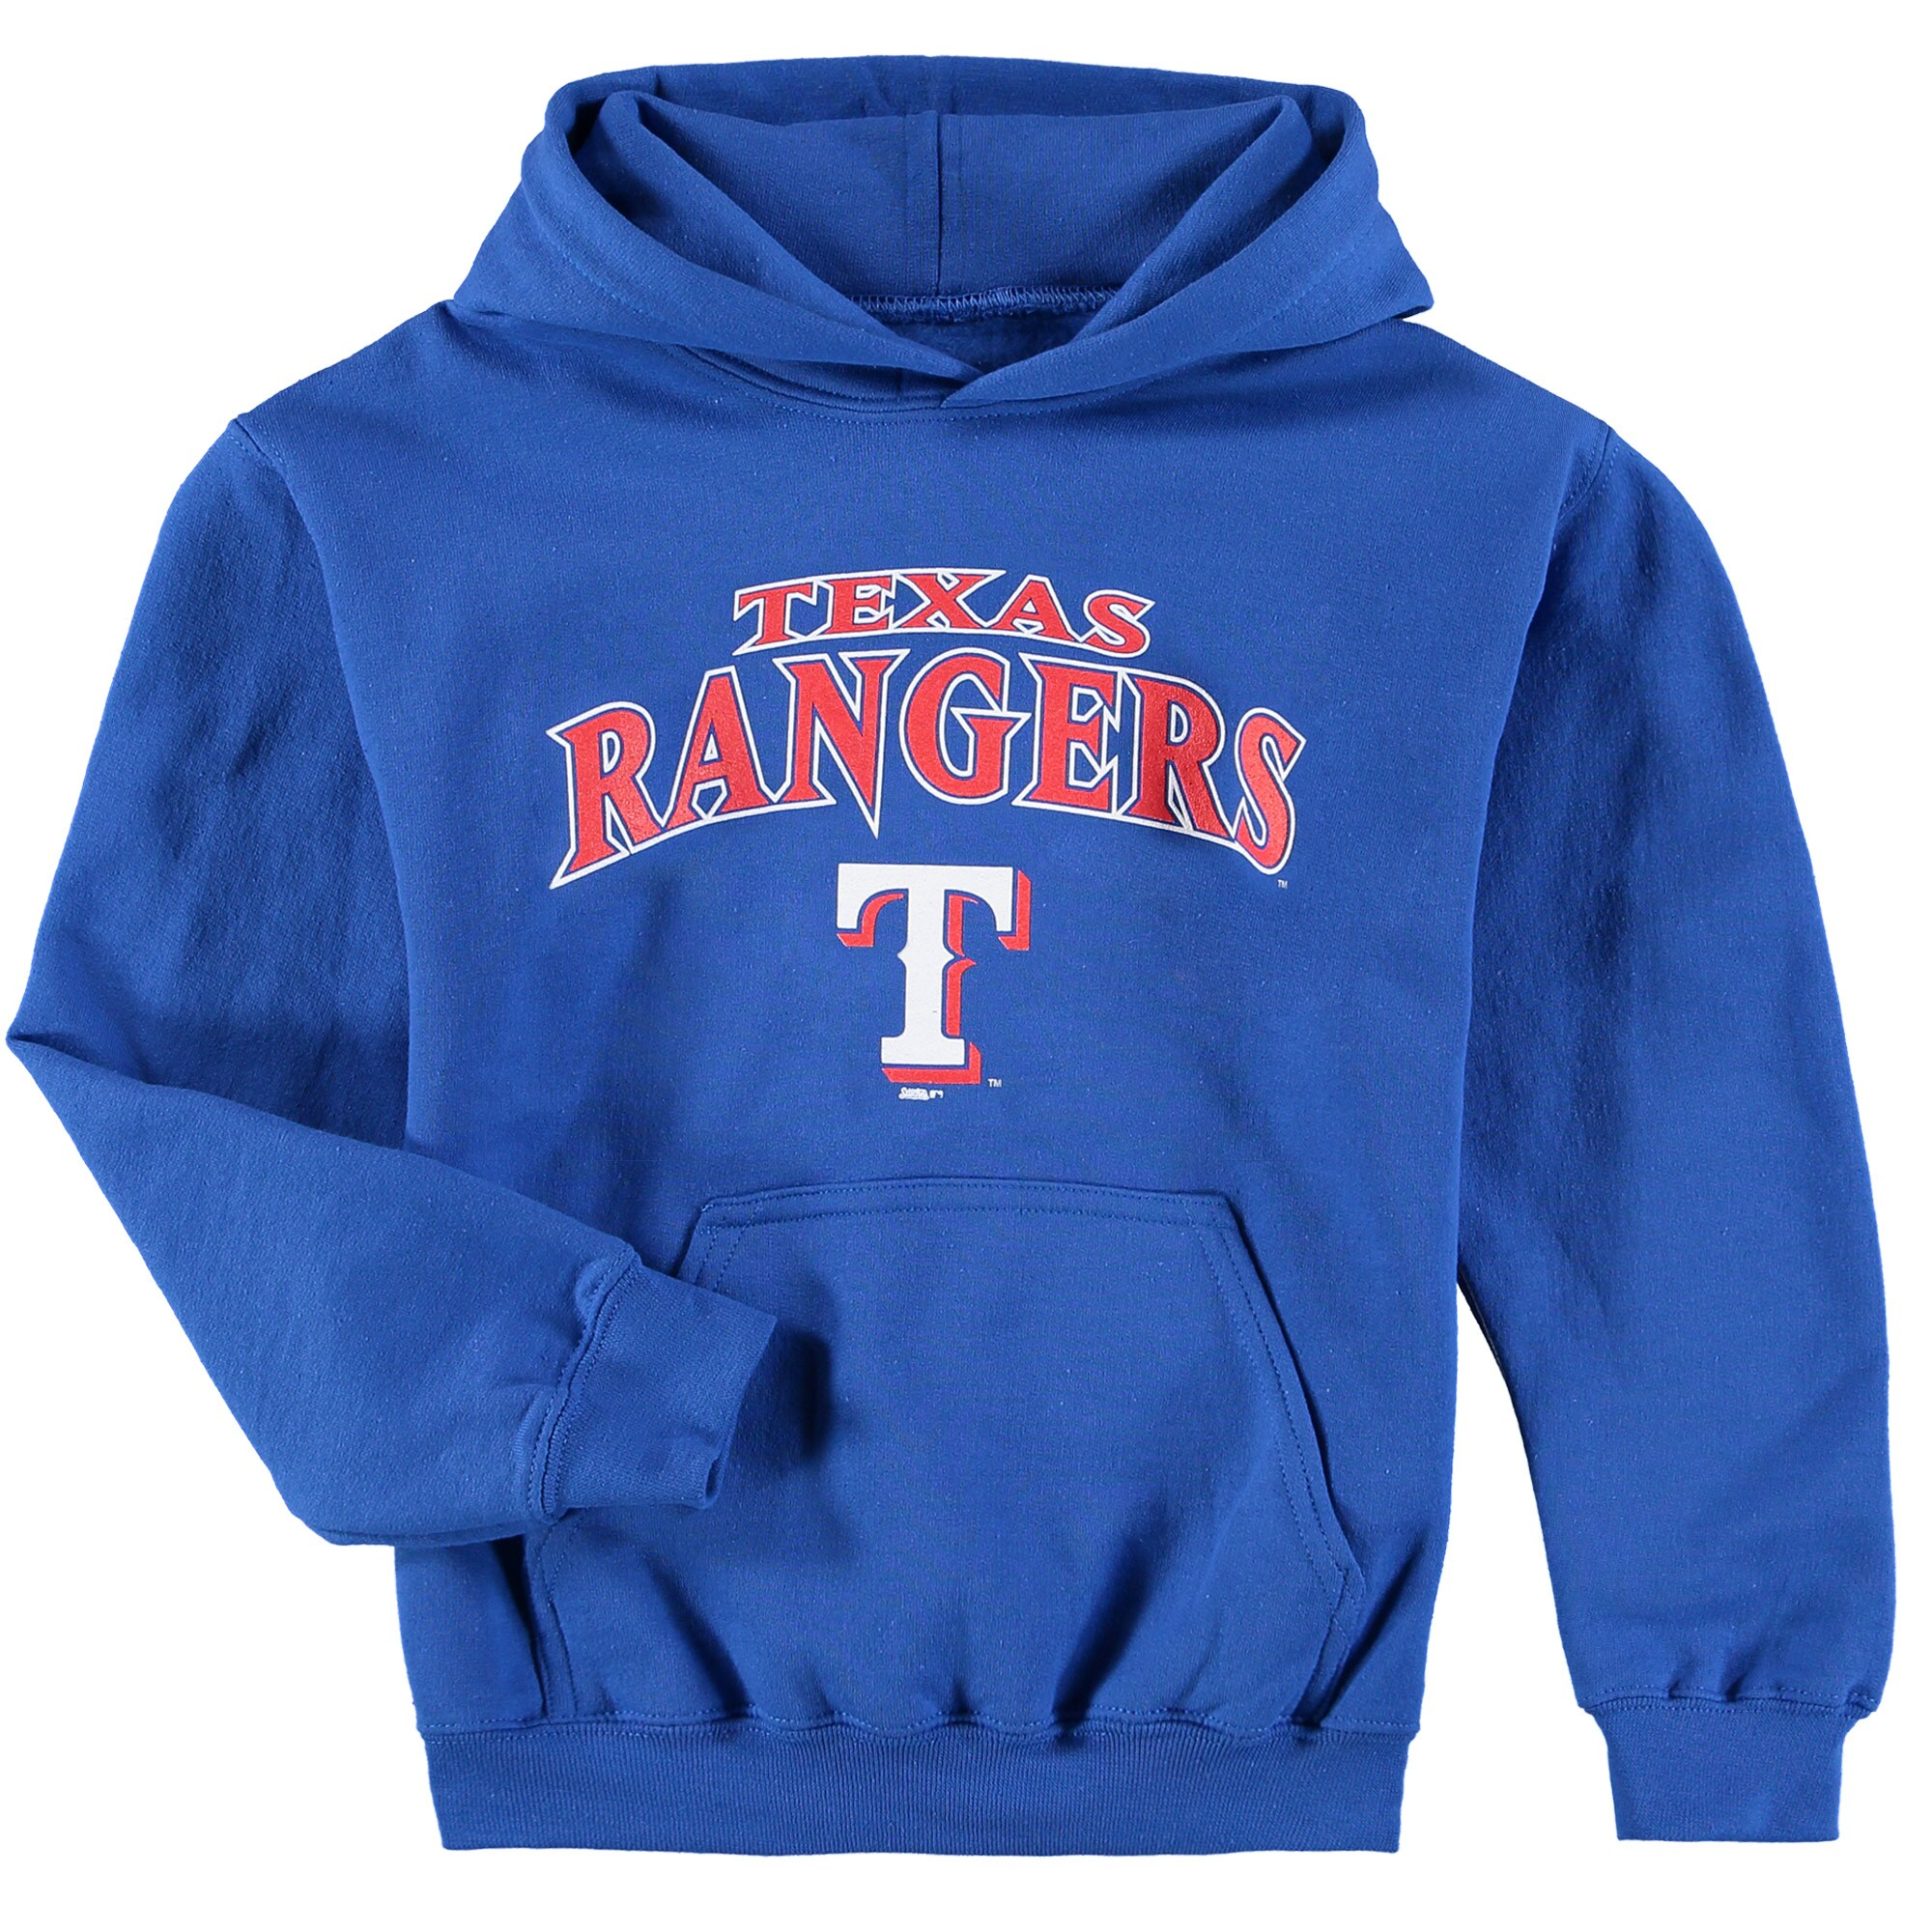 Texas Rangers Stitches Youth Team Fleece Pullover Hoodie - Royal